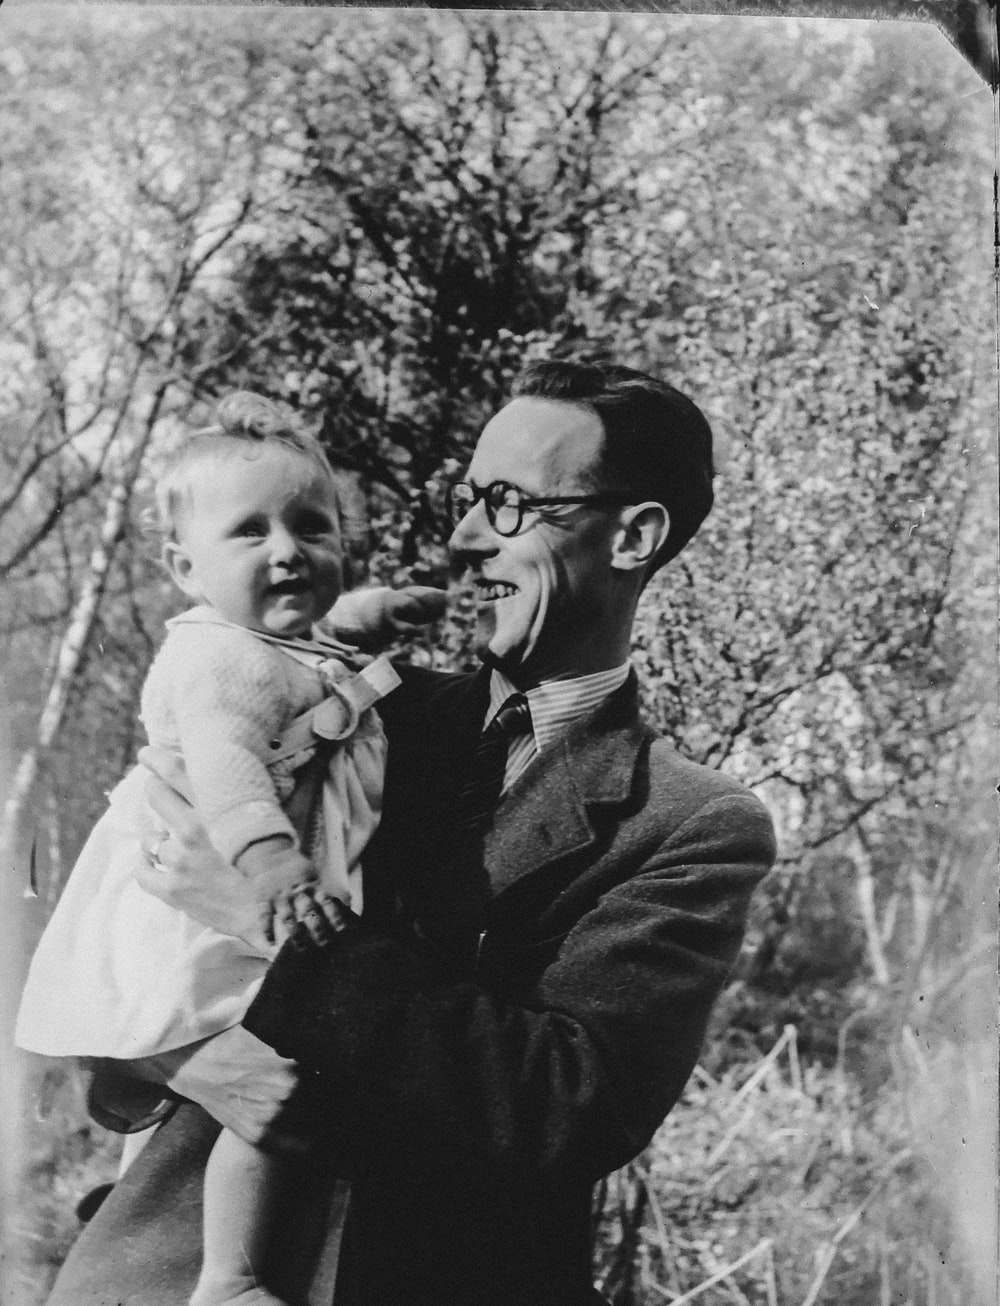 vintage photo of man holding a baby